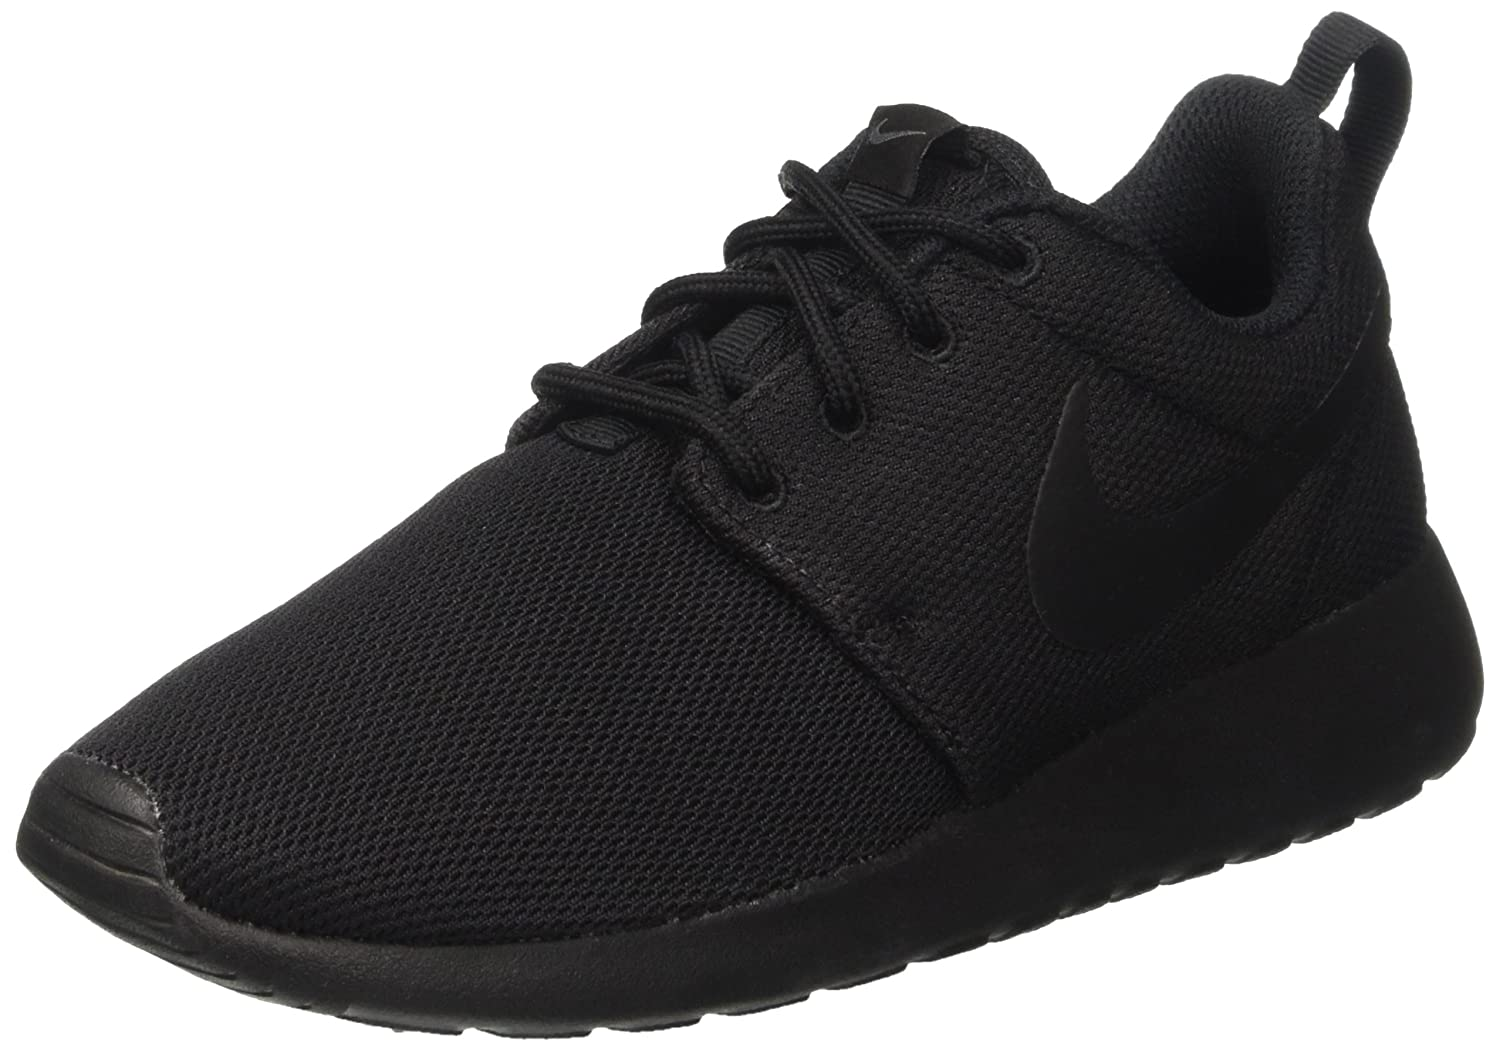 NIKE Women's Roshe One Running Shoe B01INWZ2AO 11 B(M) US|Black/White-Dark Grey